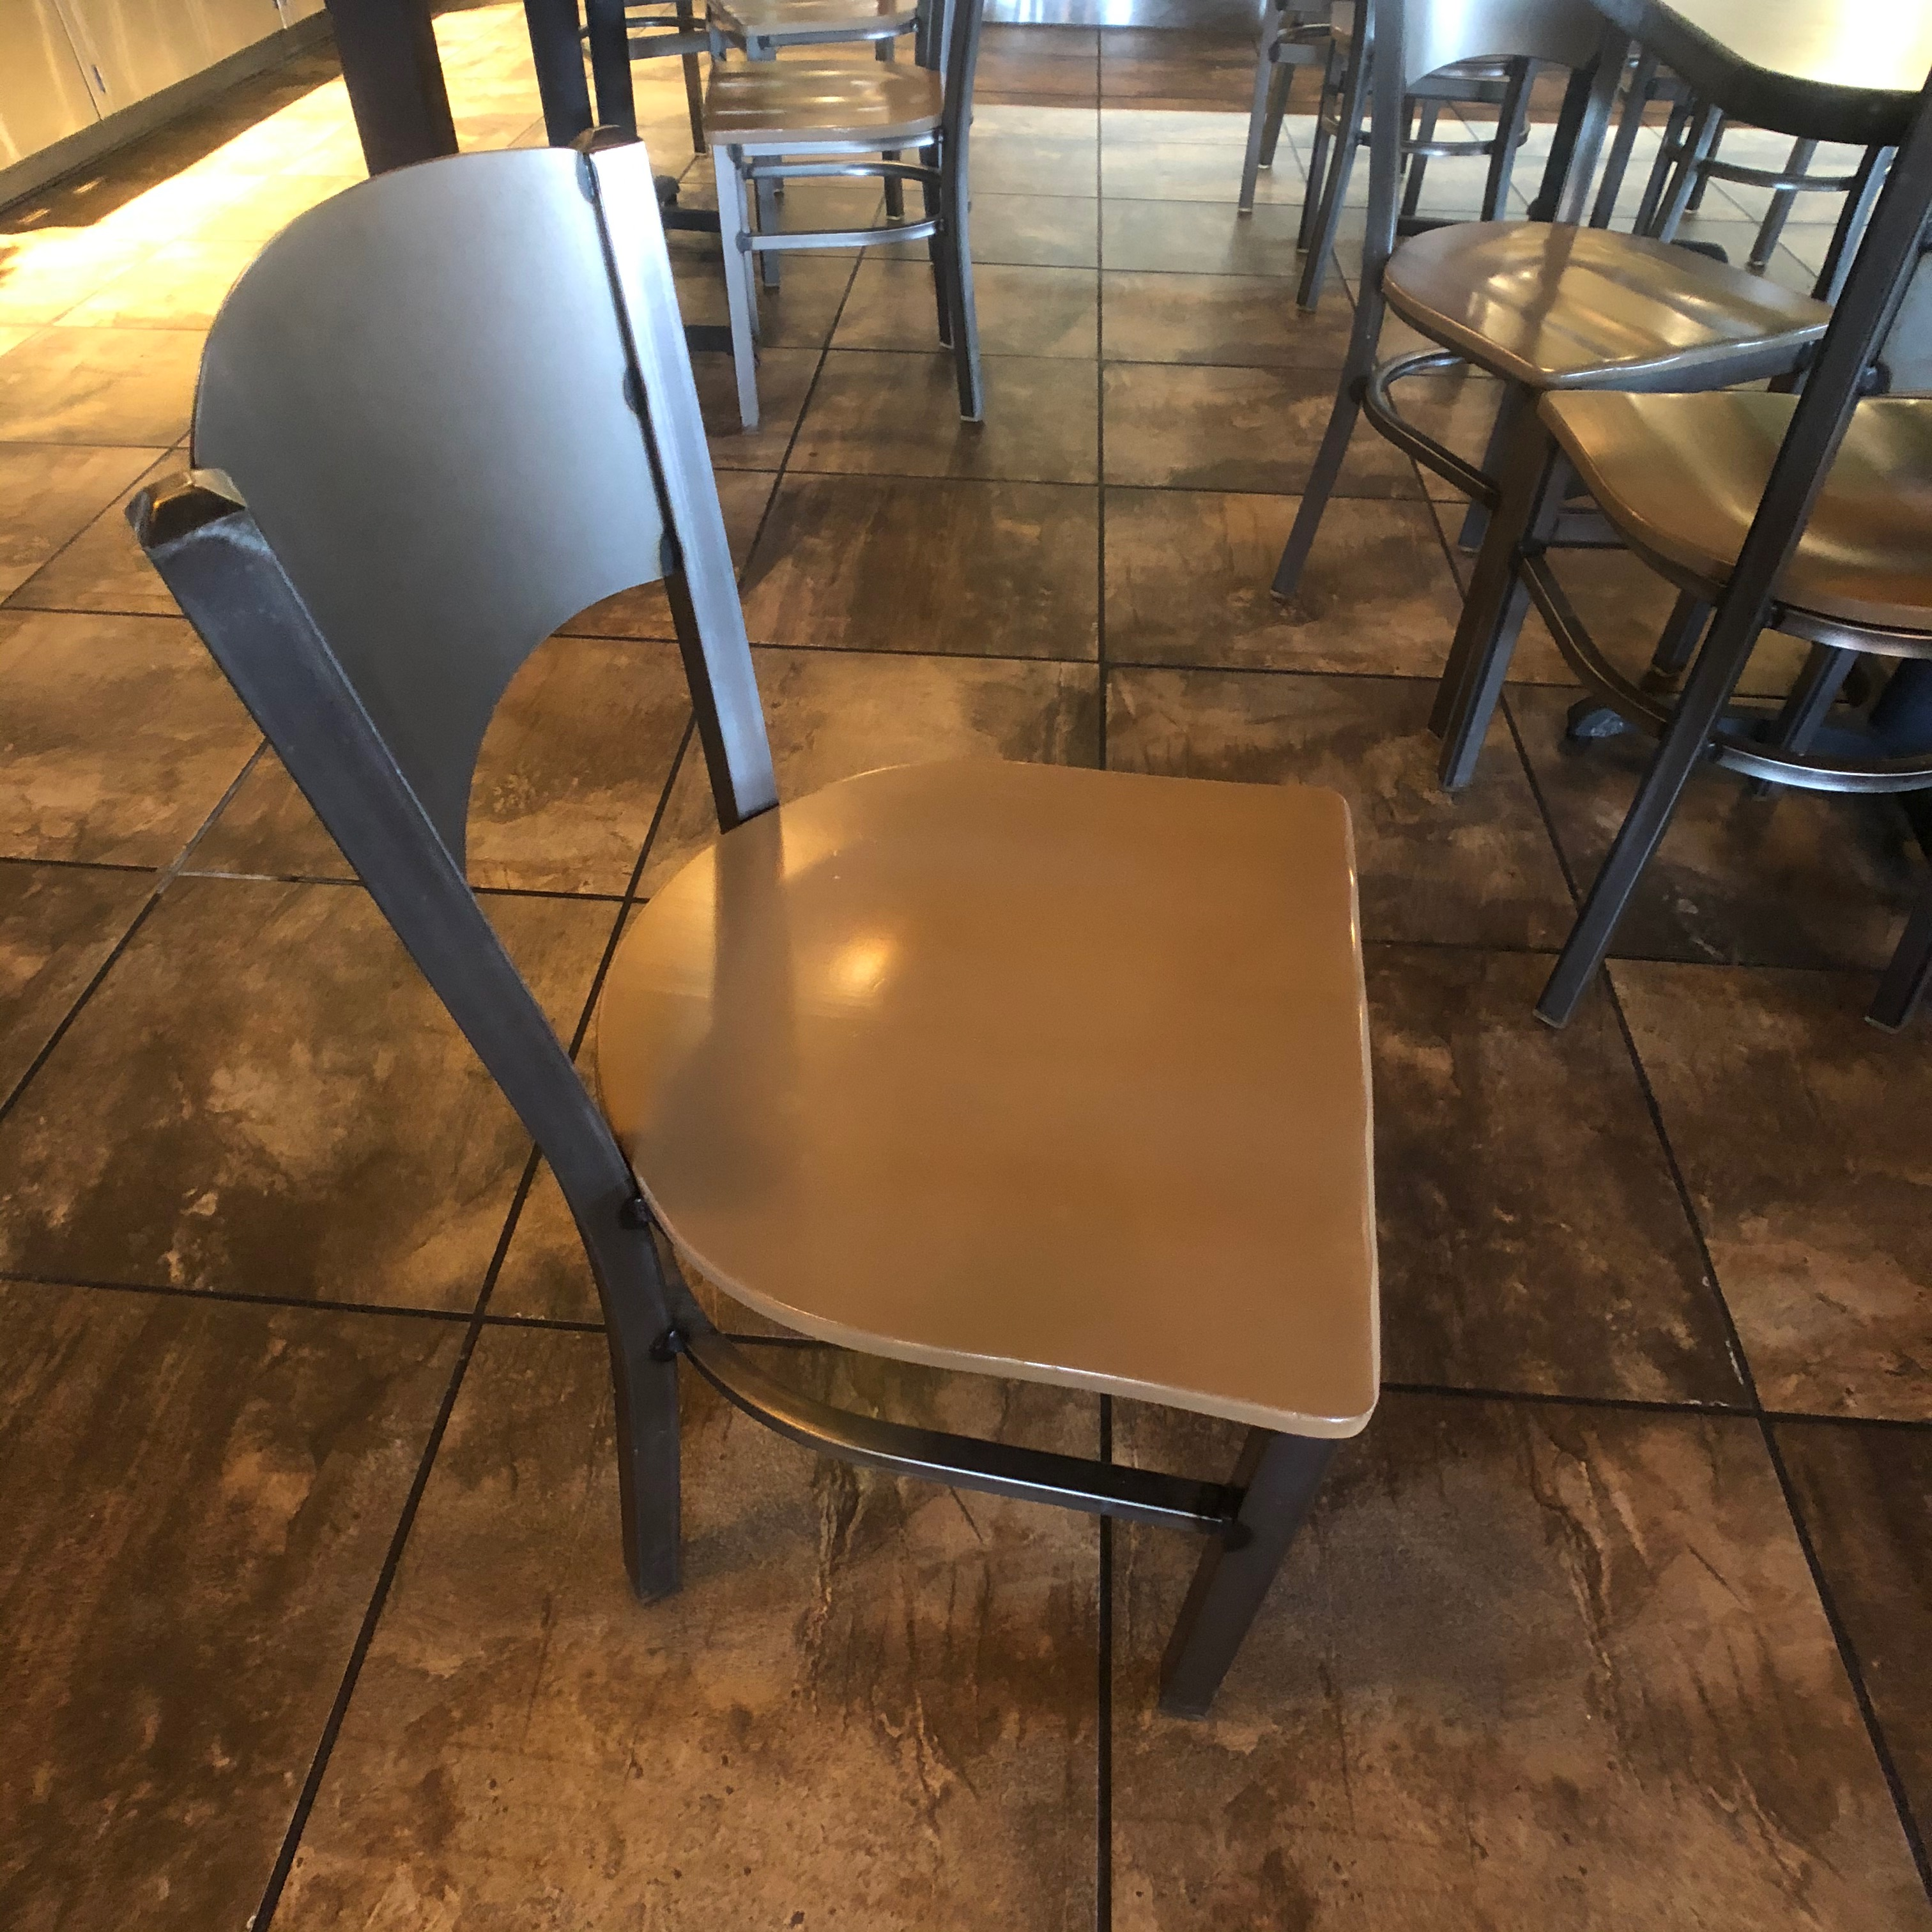 "(6) 4-Person Tables with (24) Walsh Simmons Seating Chairs, Approx. 44"" L x 28"" W - Image 5 of 5"